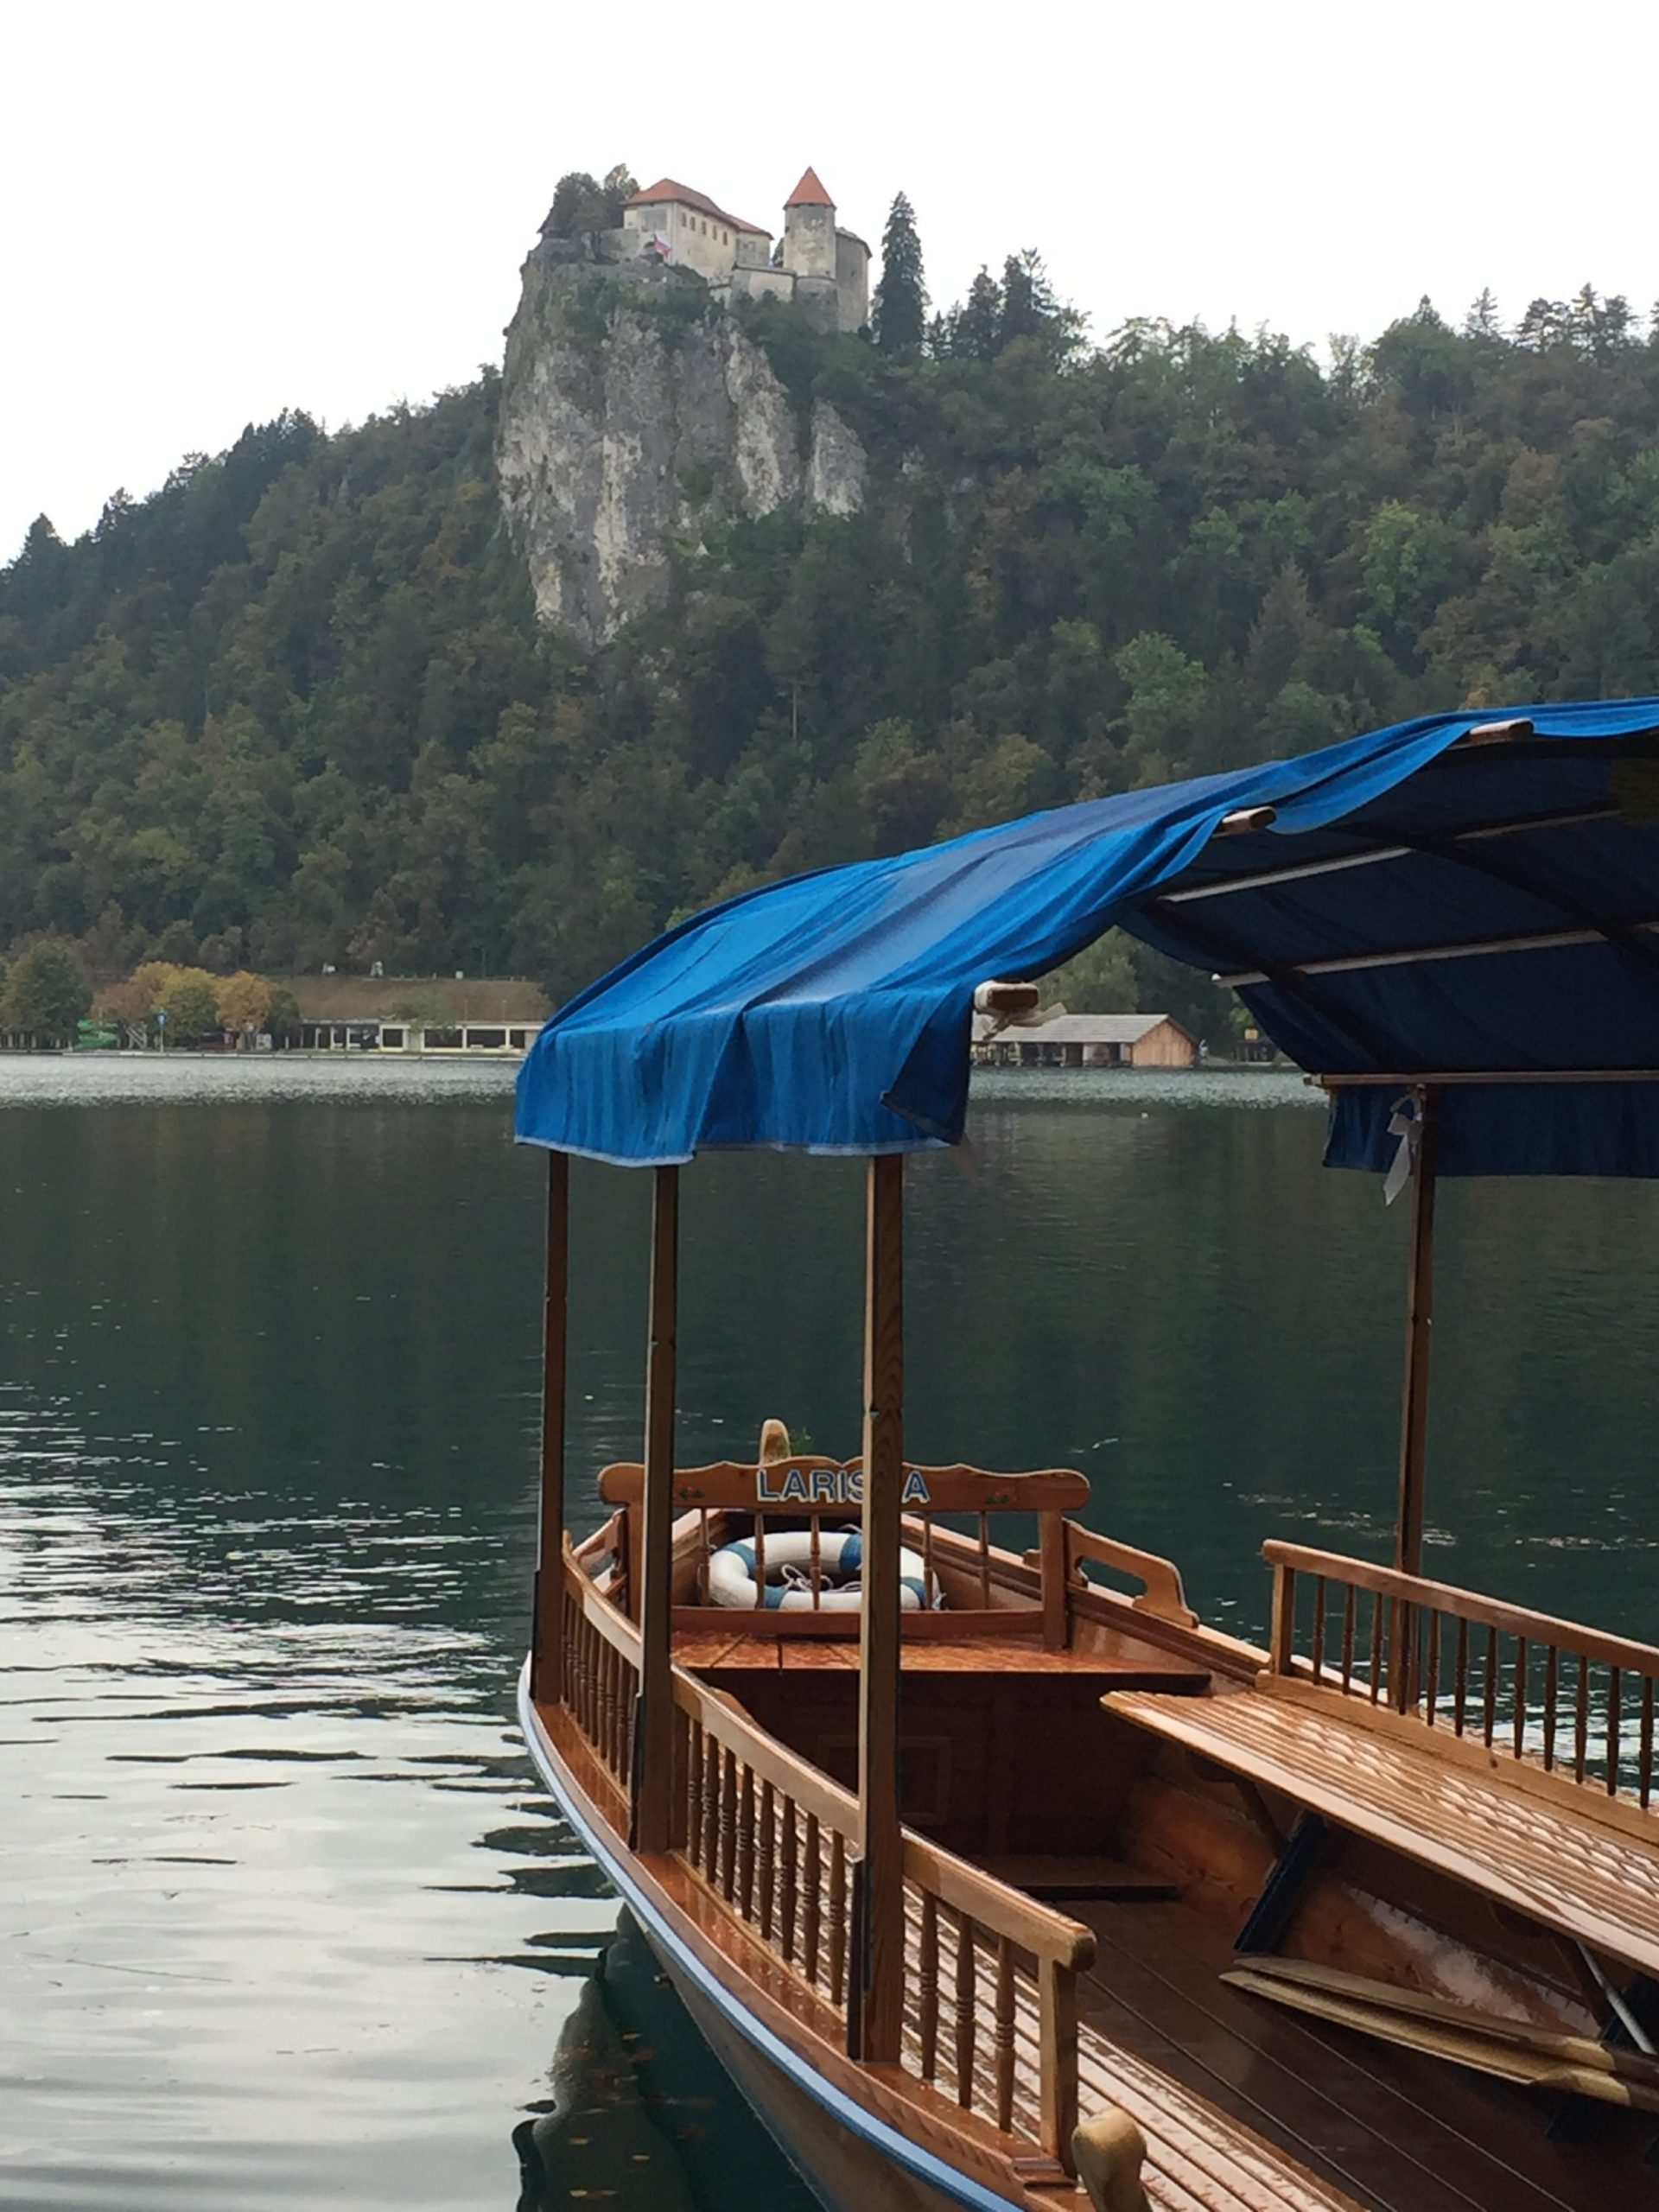 A view of Lake Bled in Slovenia with a docked boat